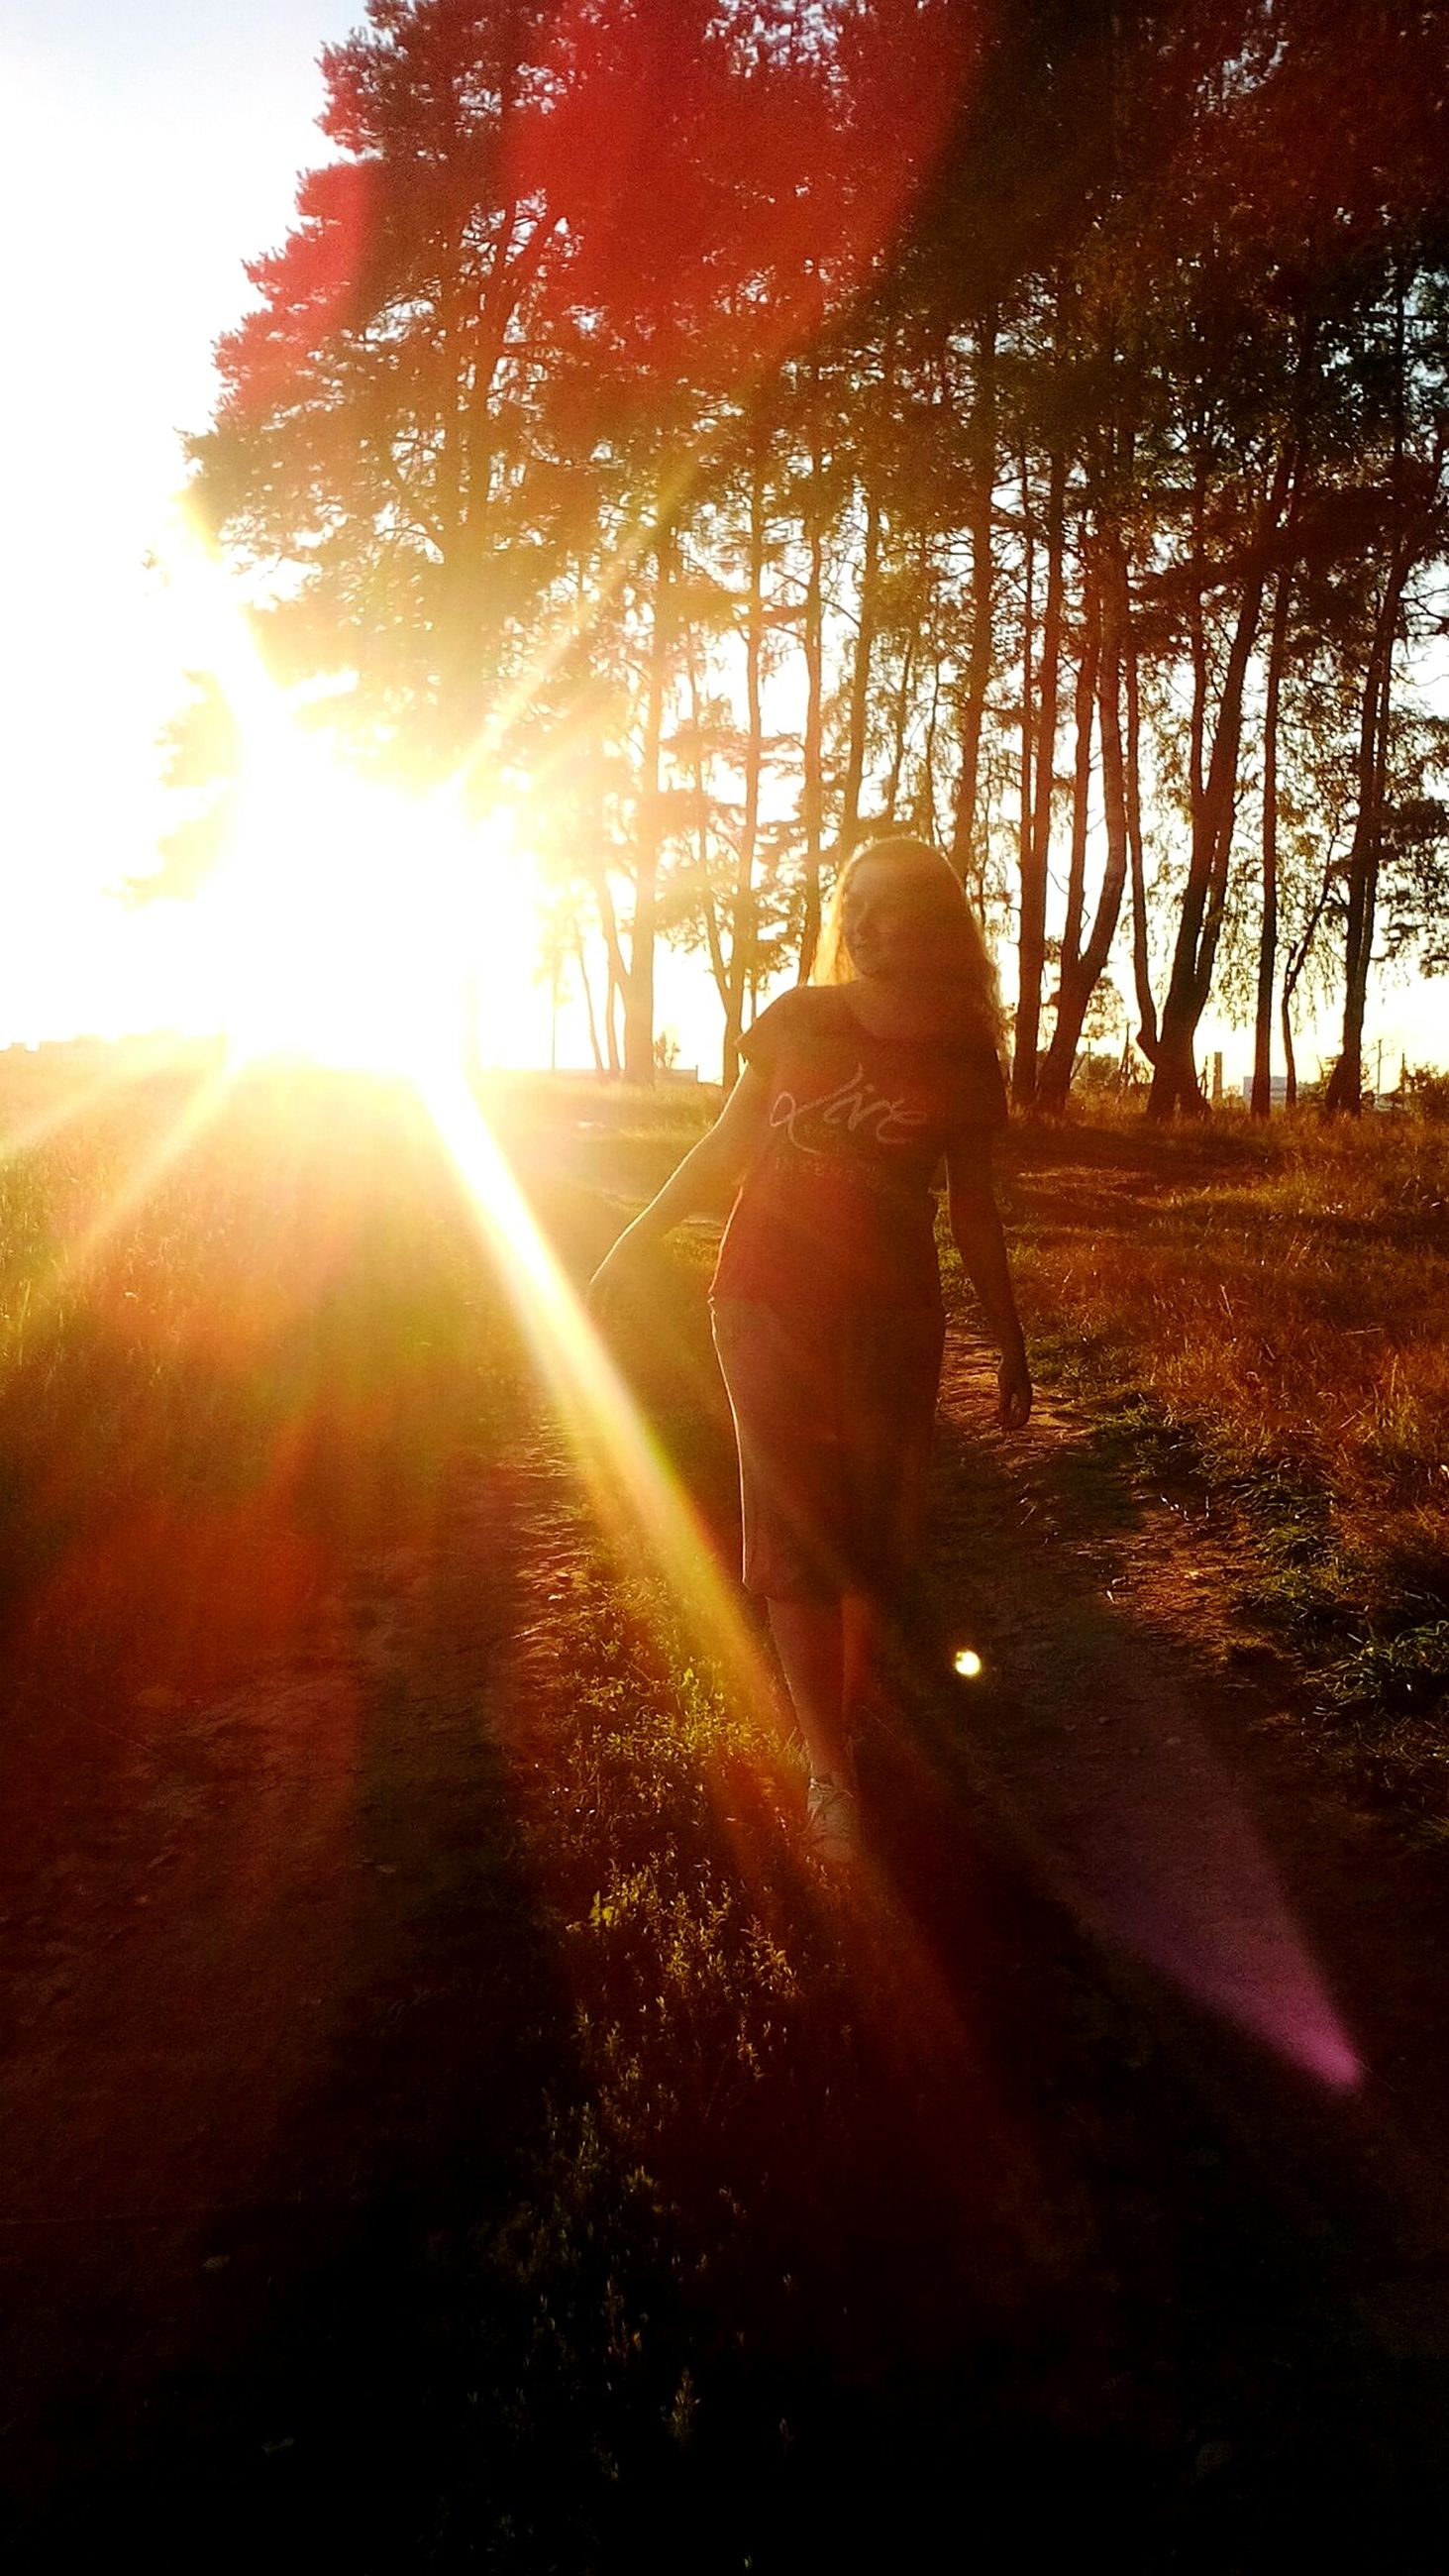 sun, sunset, sunbeam, sunlight, lifestyles, lens flare, leisure activity, tree, nature, tranquility, beauty in nature, tranquil scene, orange color, sky, back lit, outdoors, scenics, landscape, growth, bright, idyllic, sunny, non-urban scene, plant, grass, casual clothing